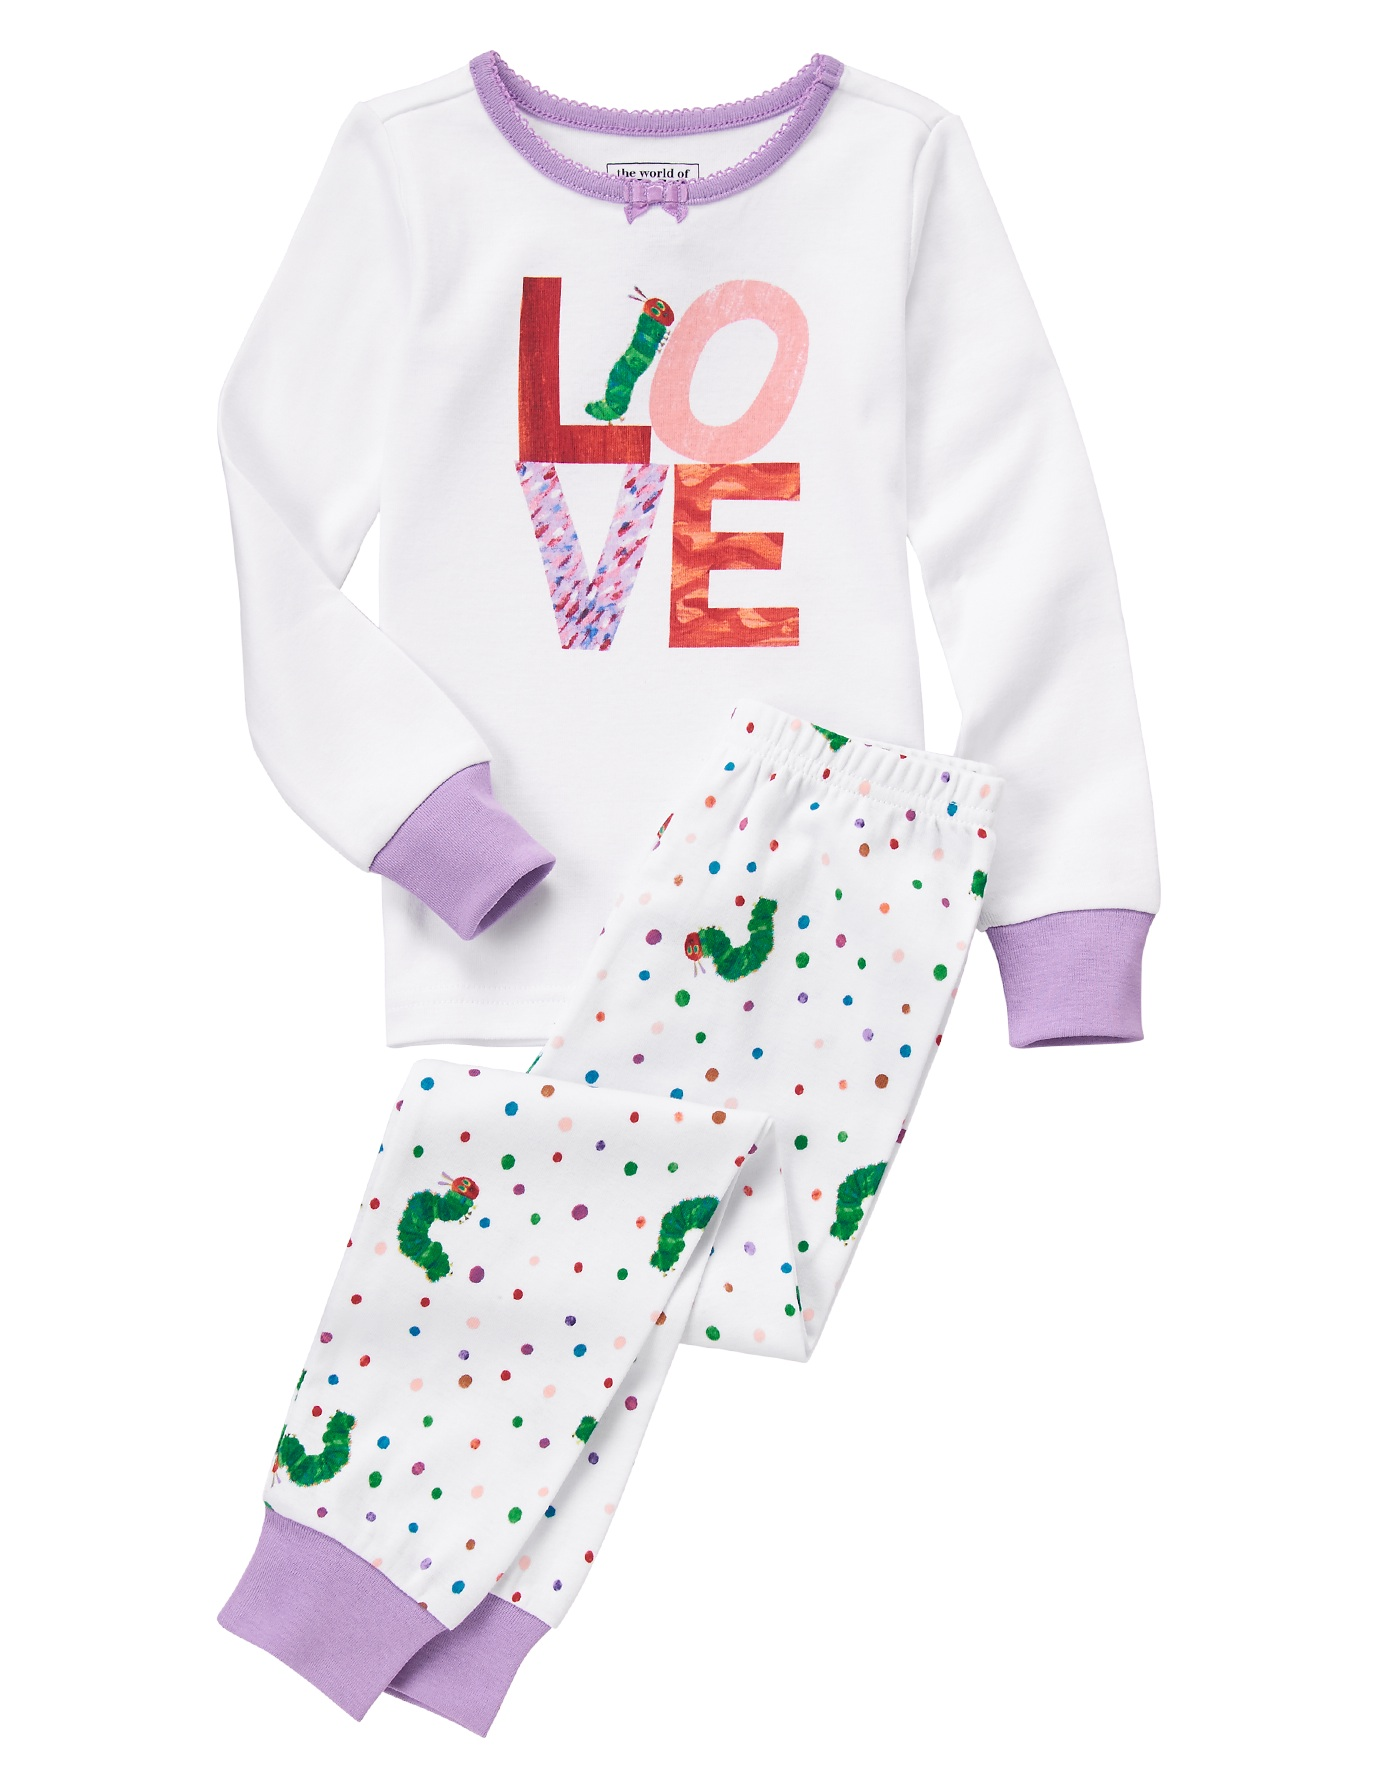 The Very Hungry Caterpillar LOVE jammies